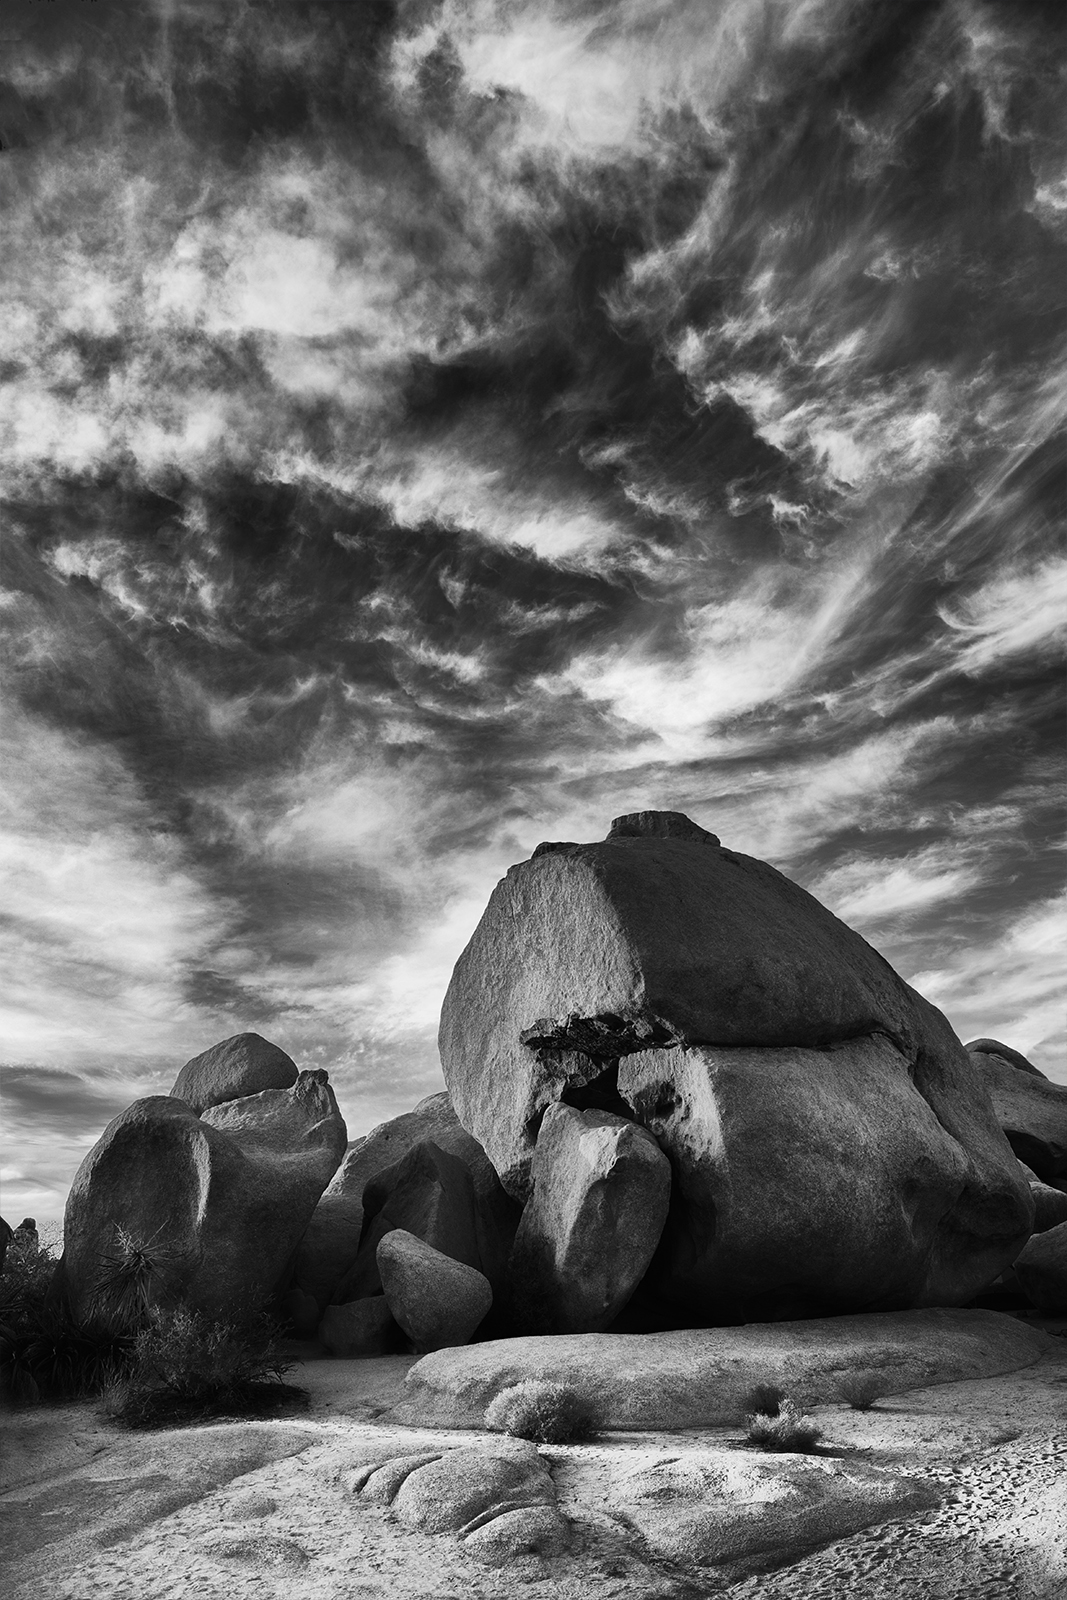 Hidden Valley is a campground in Joshua Tree National Park.  This location attracts a lot of climbers and hikers.   The lure...